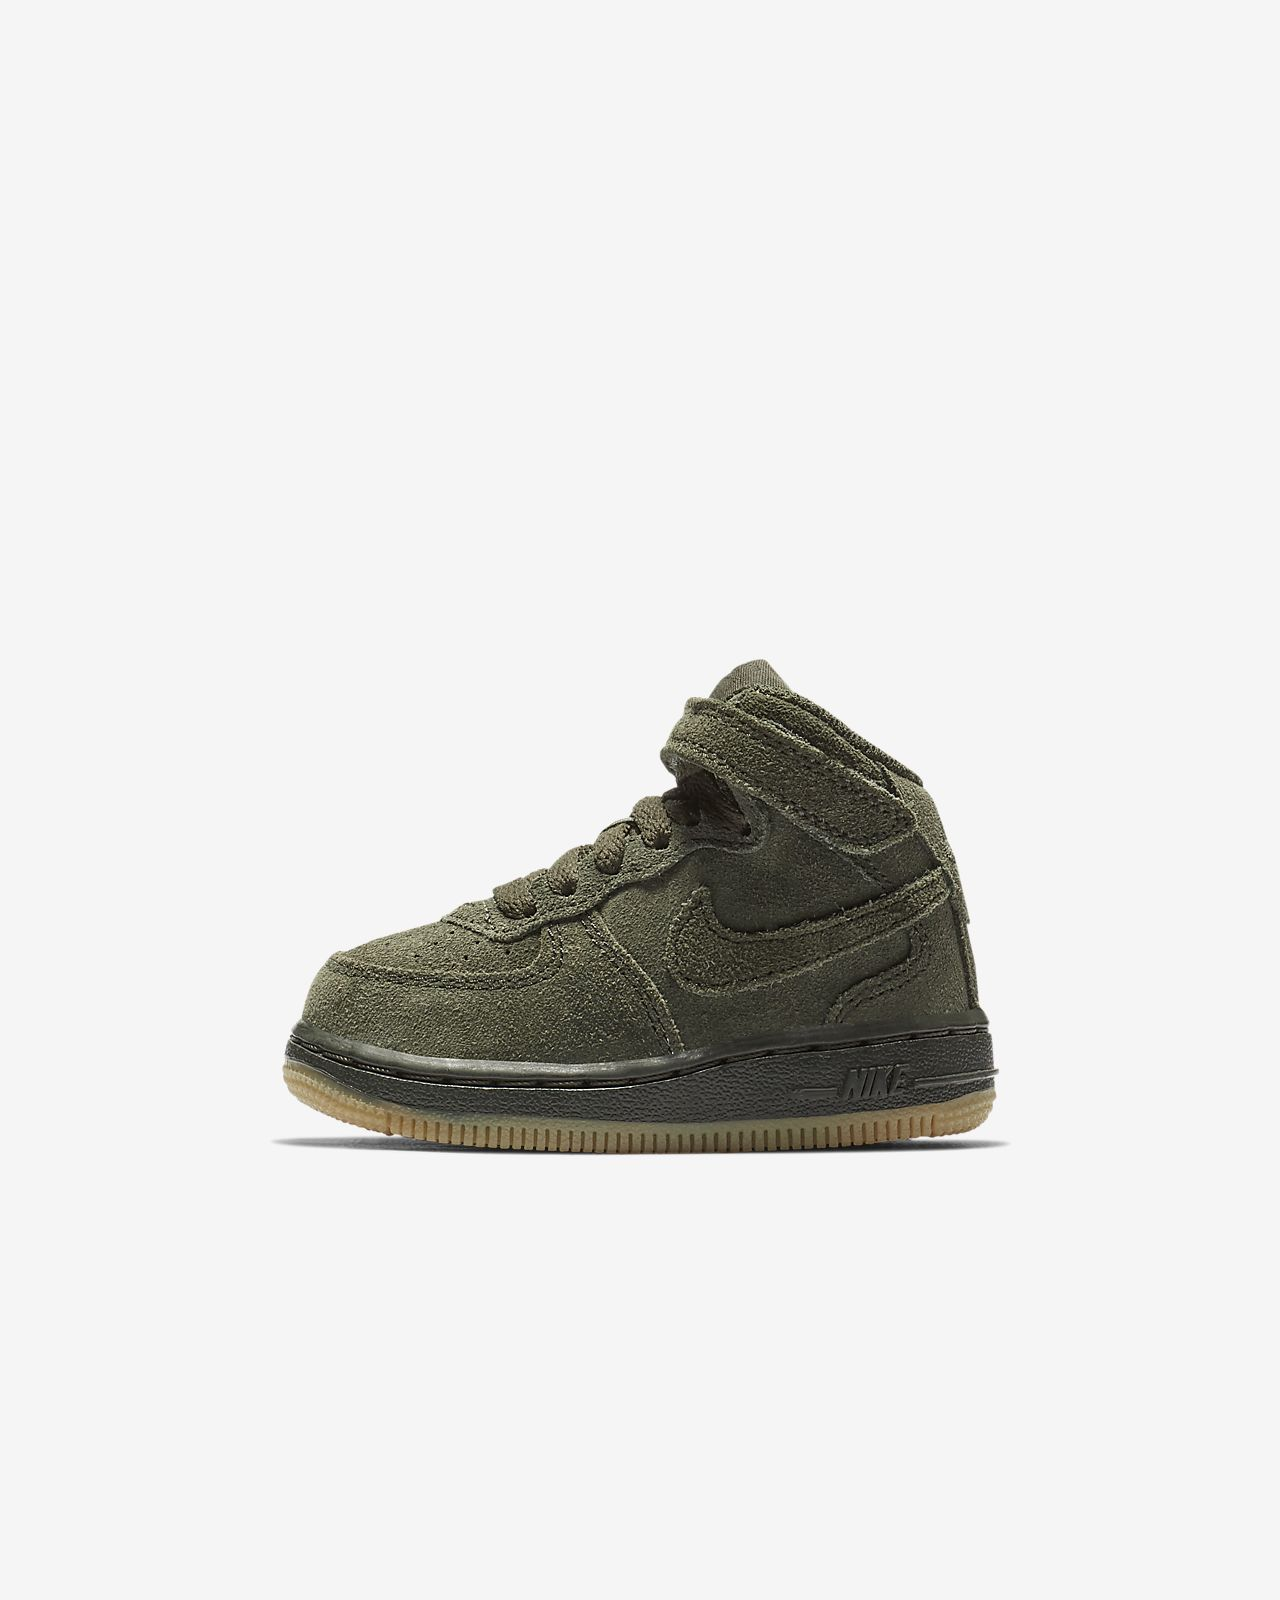 cheaper 0dedc e373b Nike Air Force 1 Mid LV8-skoen til babyersmåbørn